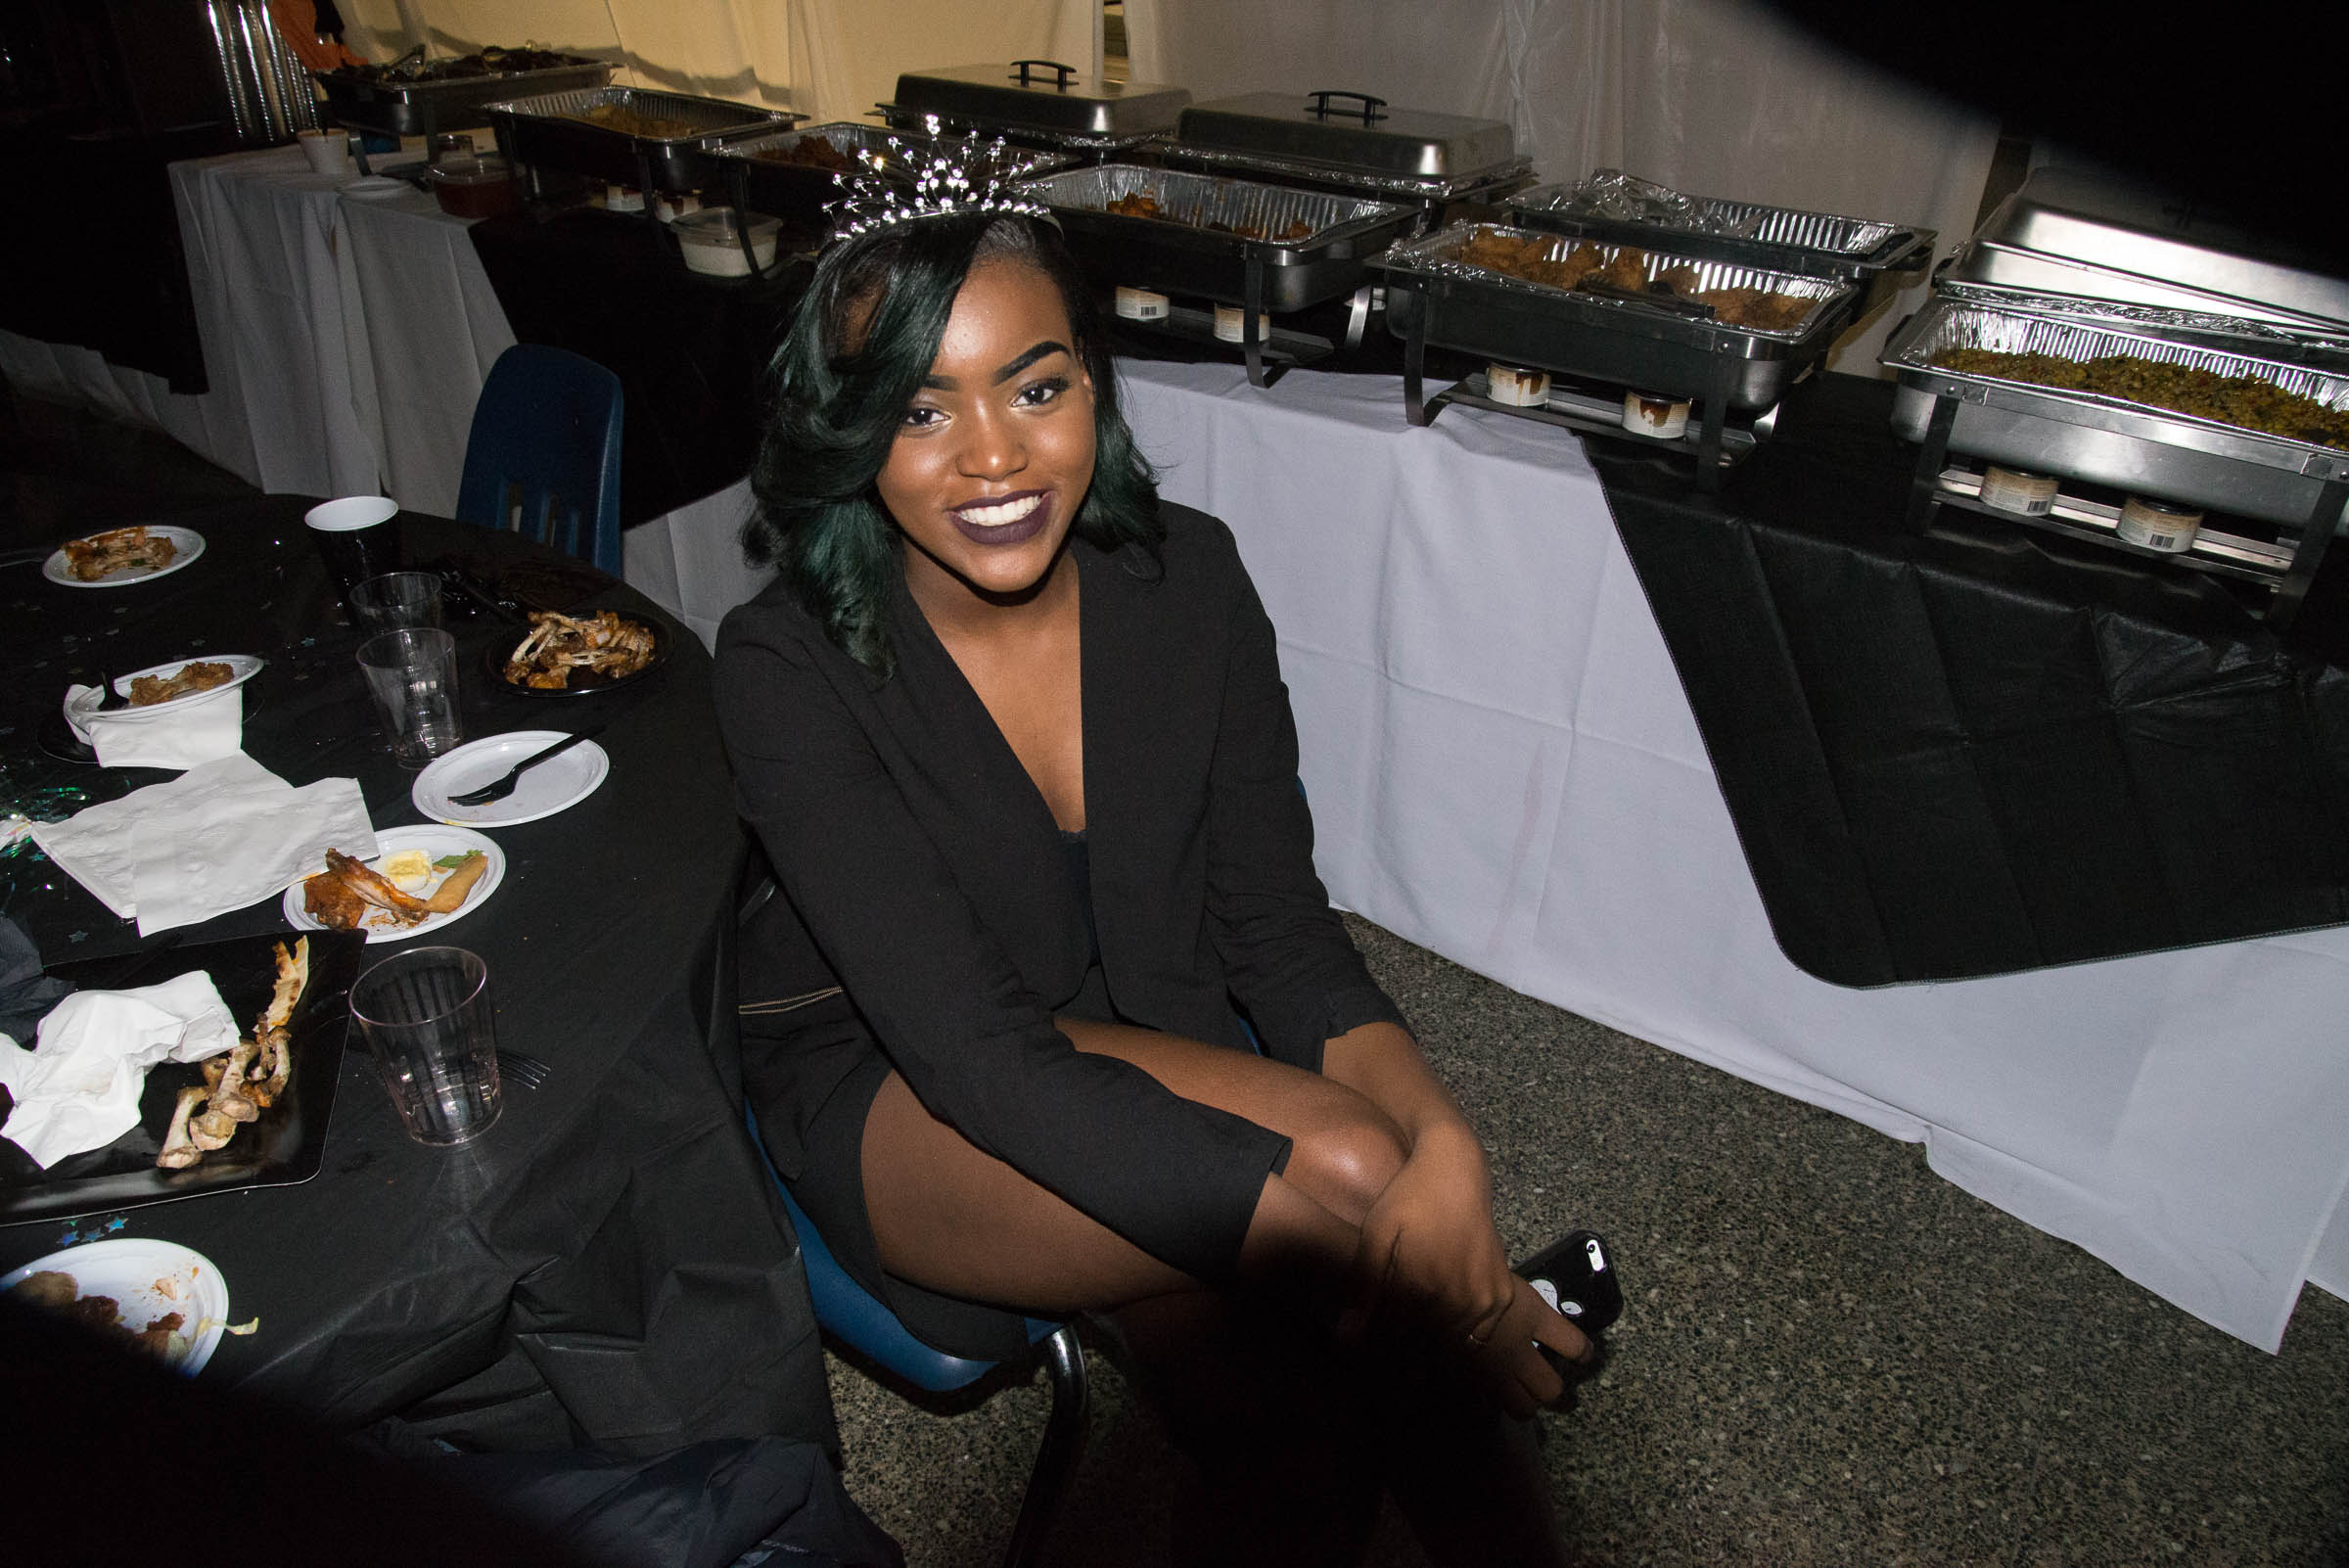 Homecoming queen, Jasmine Bourne, looks flawless at her last homecoming dance at FCA.